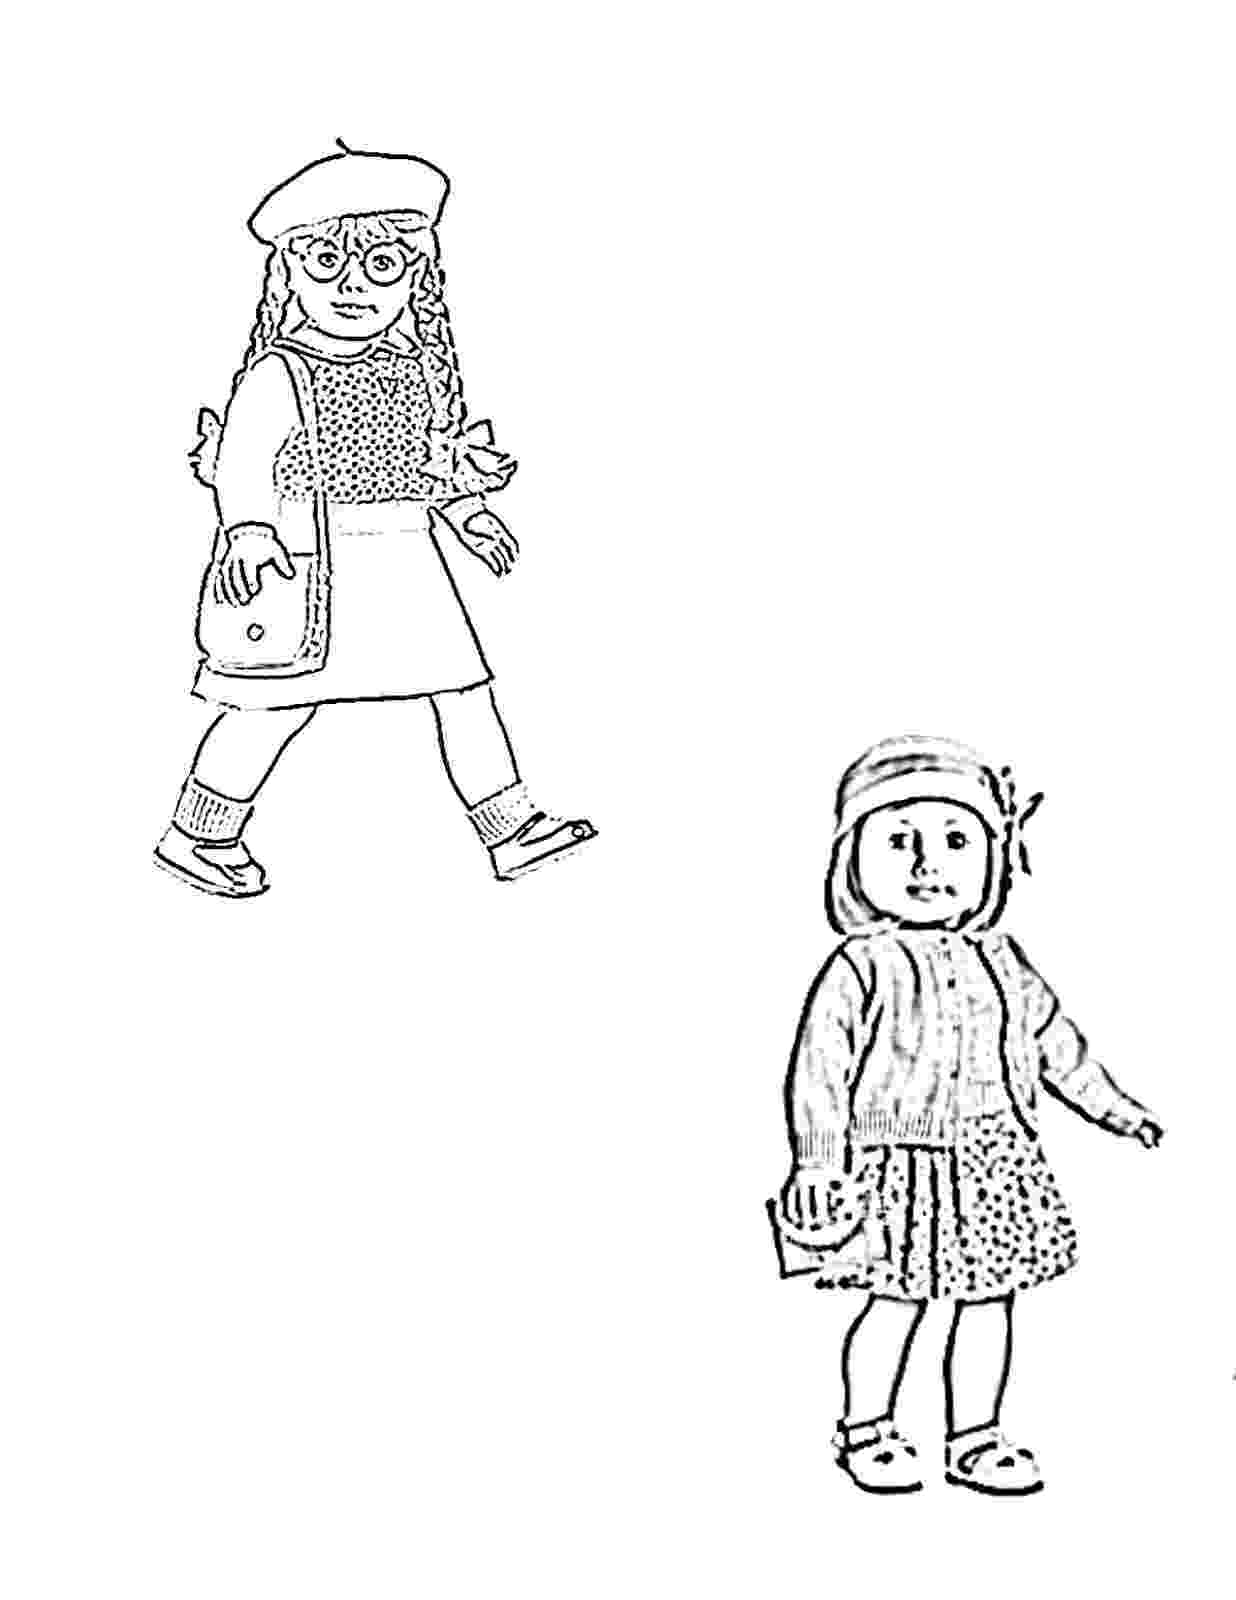 american girl coloring pages printable american girl doll coloring pages to download and print girl printable pages coloring american